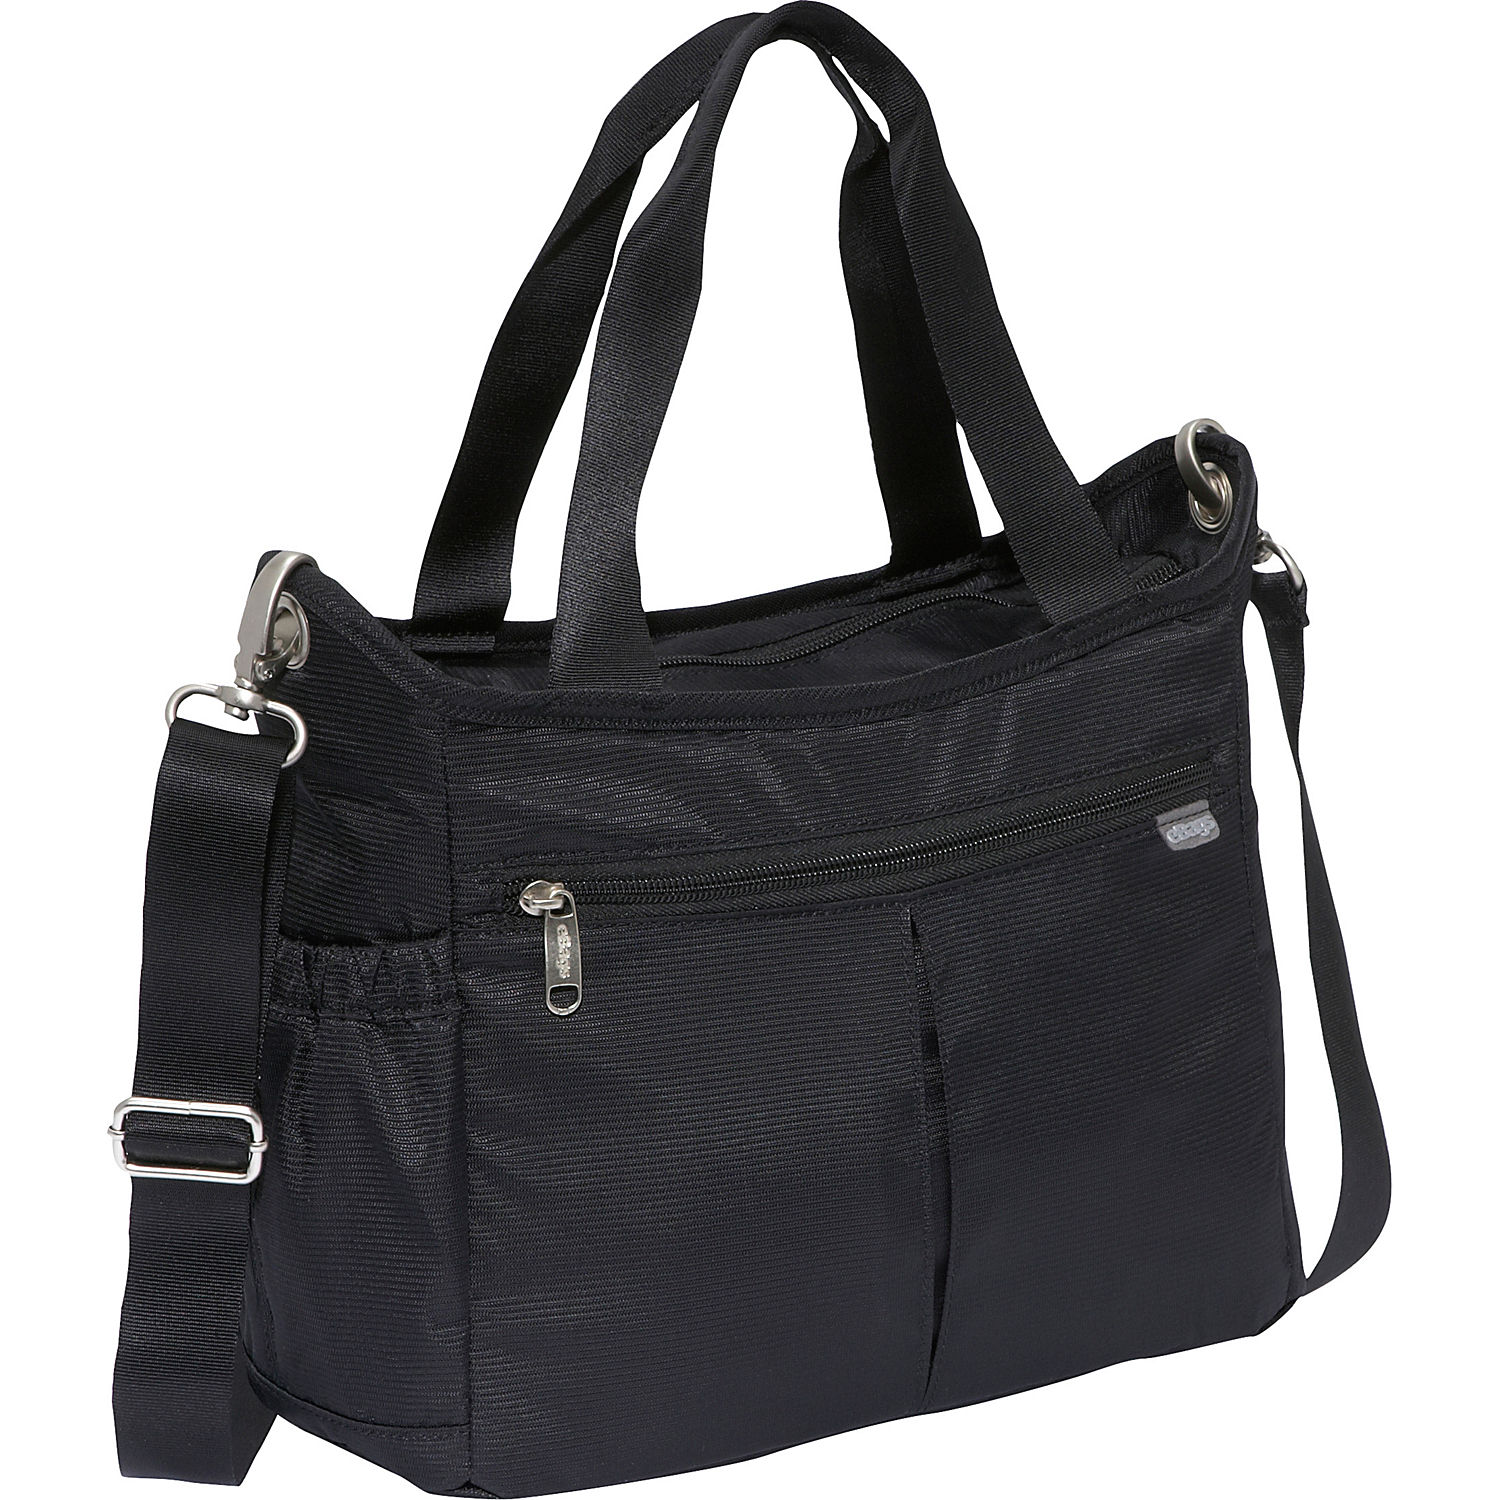 Best Tote Bags Travel